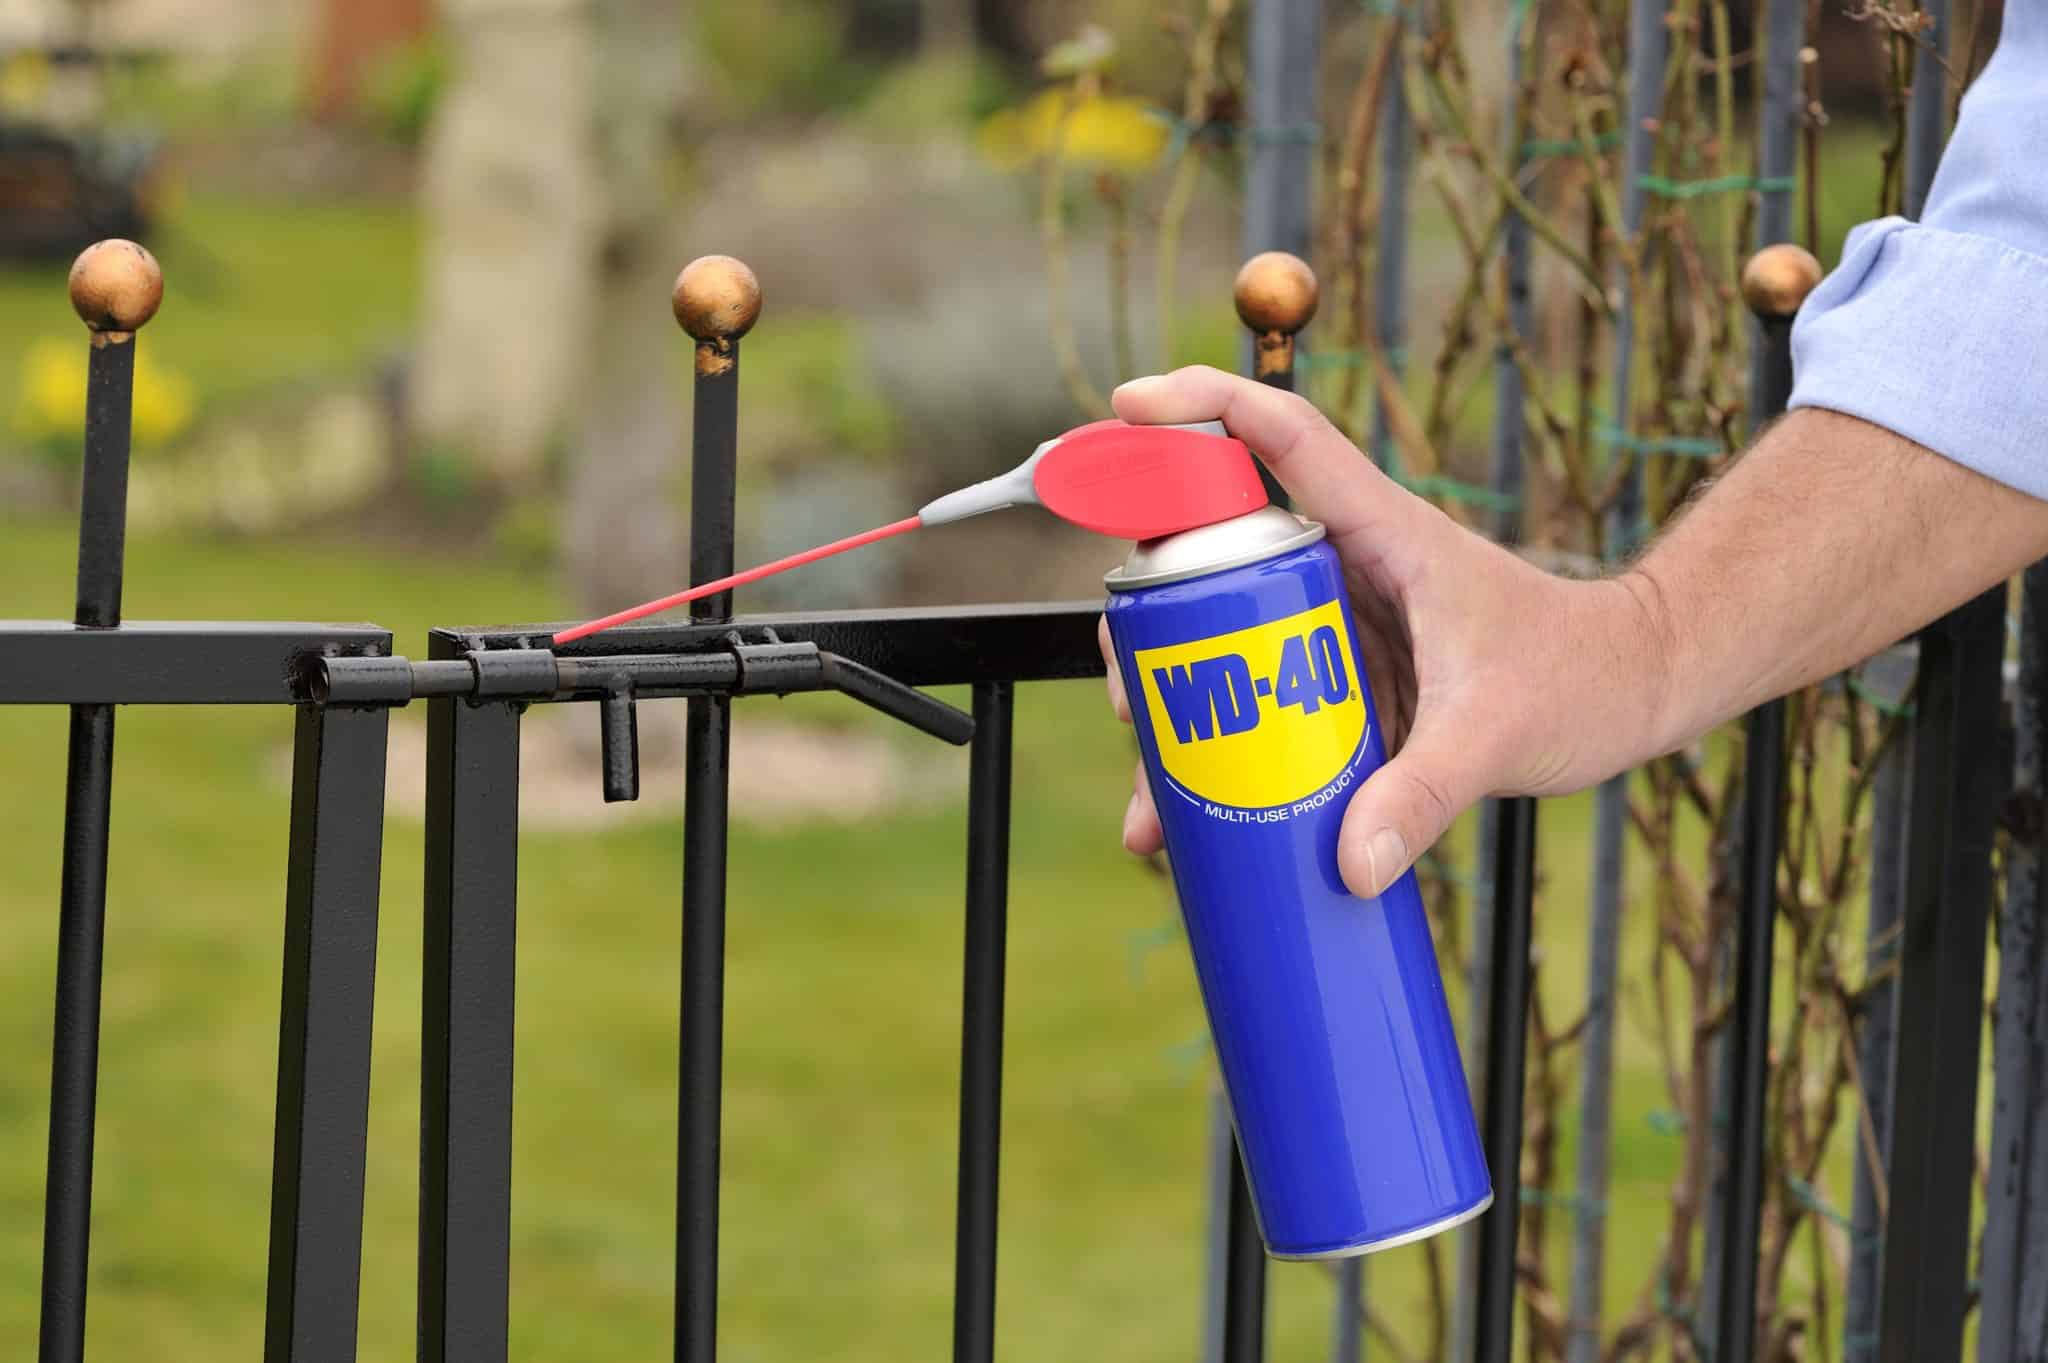 how to use wd-40